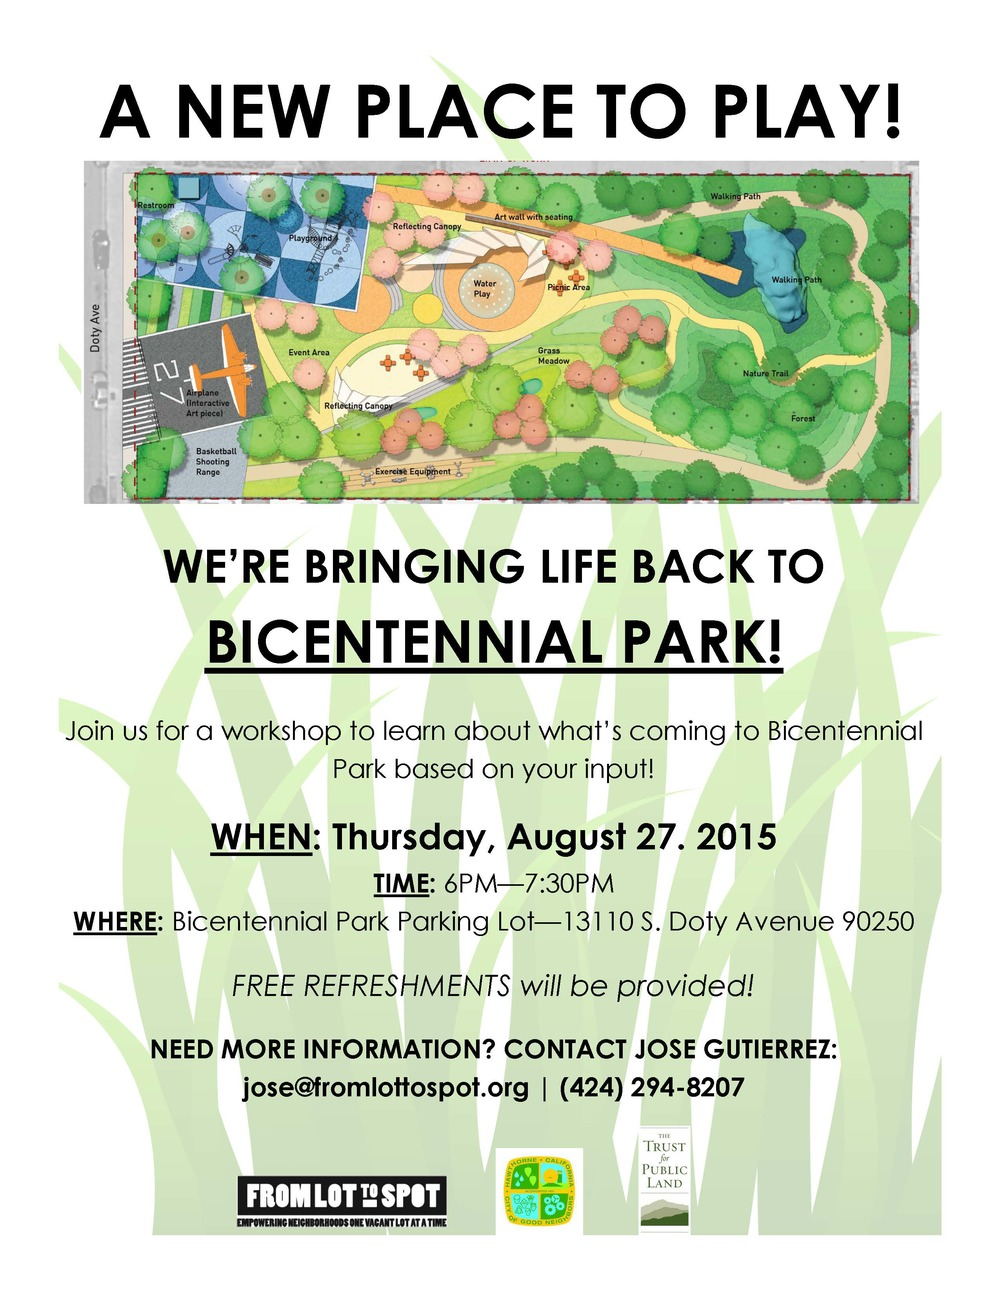 cm_events-Bicentennial General Outreach2015_Page_1.jpg